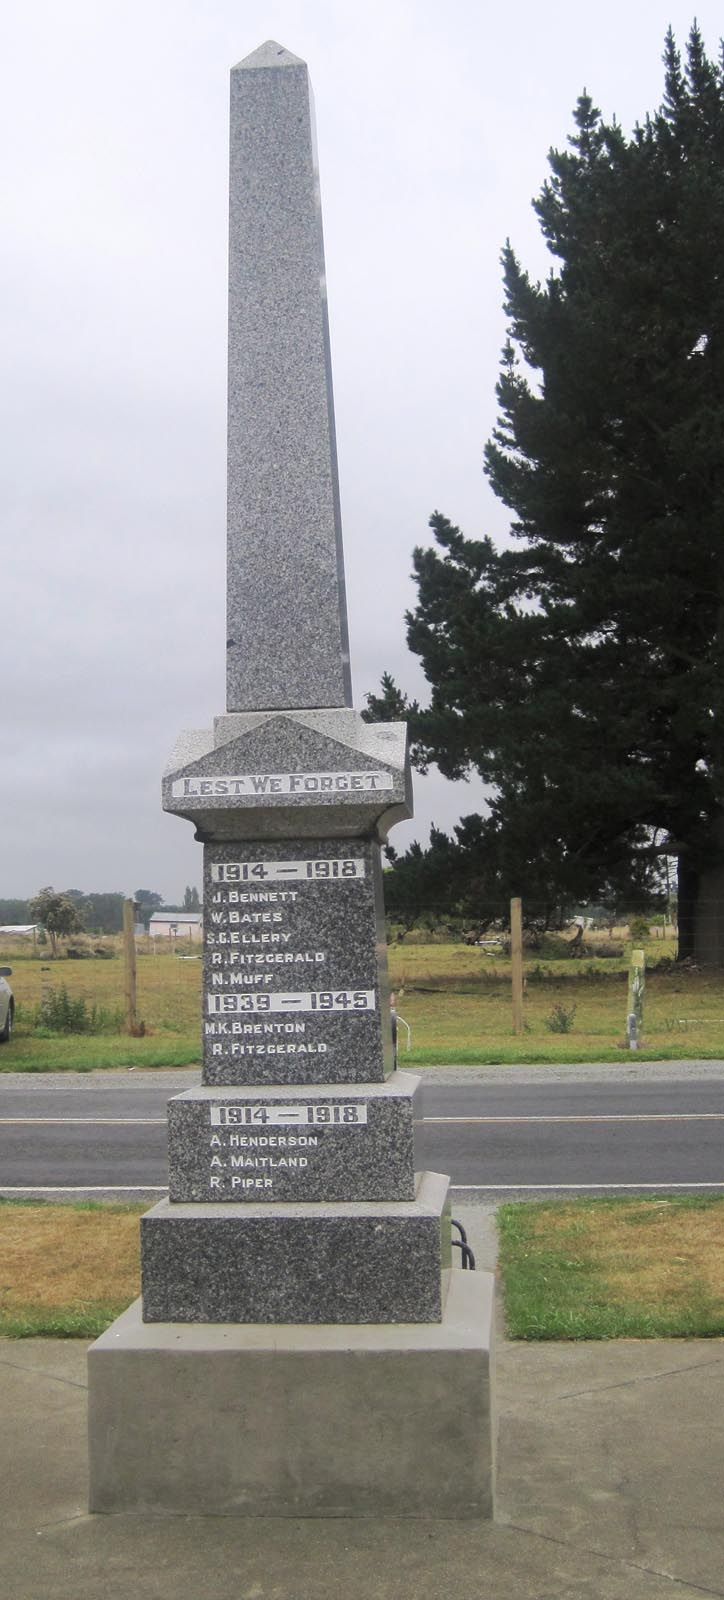 Orari War Memorial in 2010